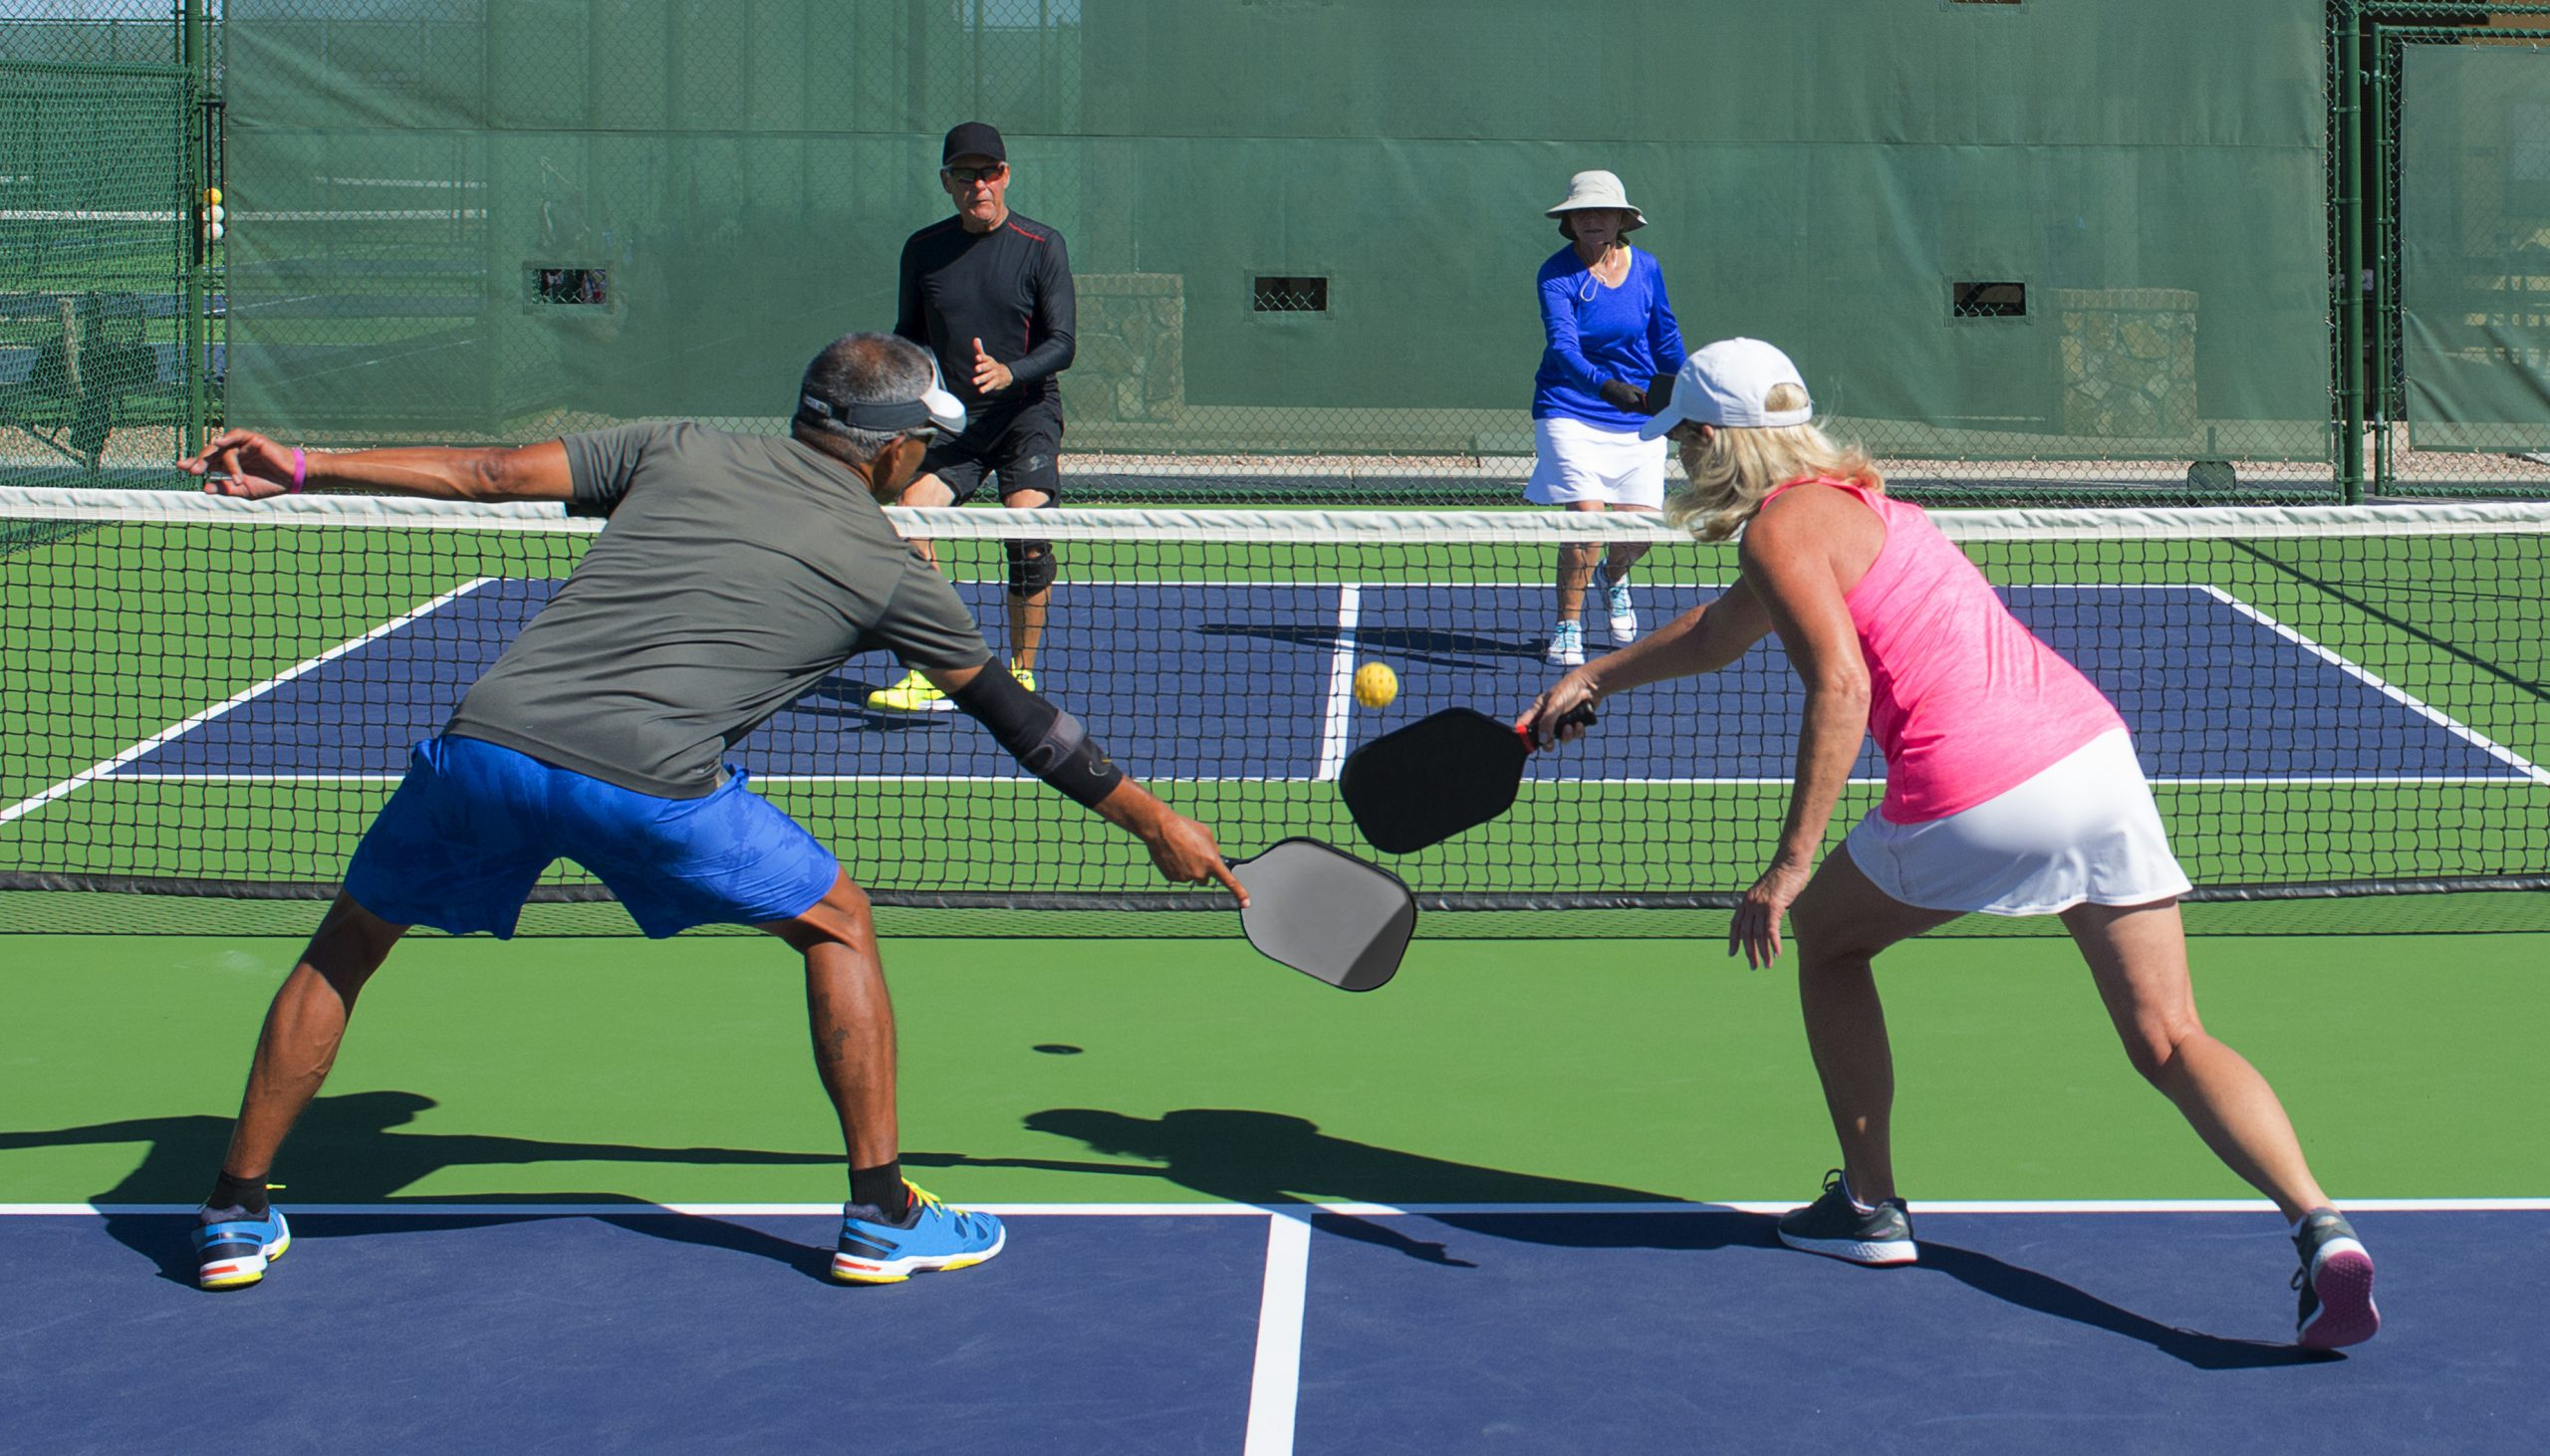 How To Participate in Pickleball